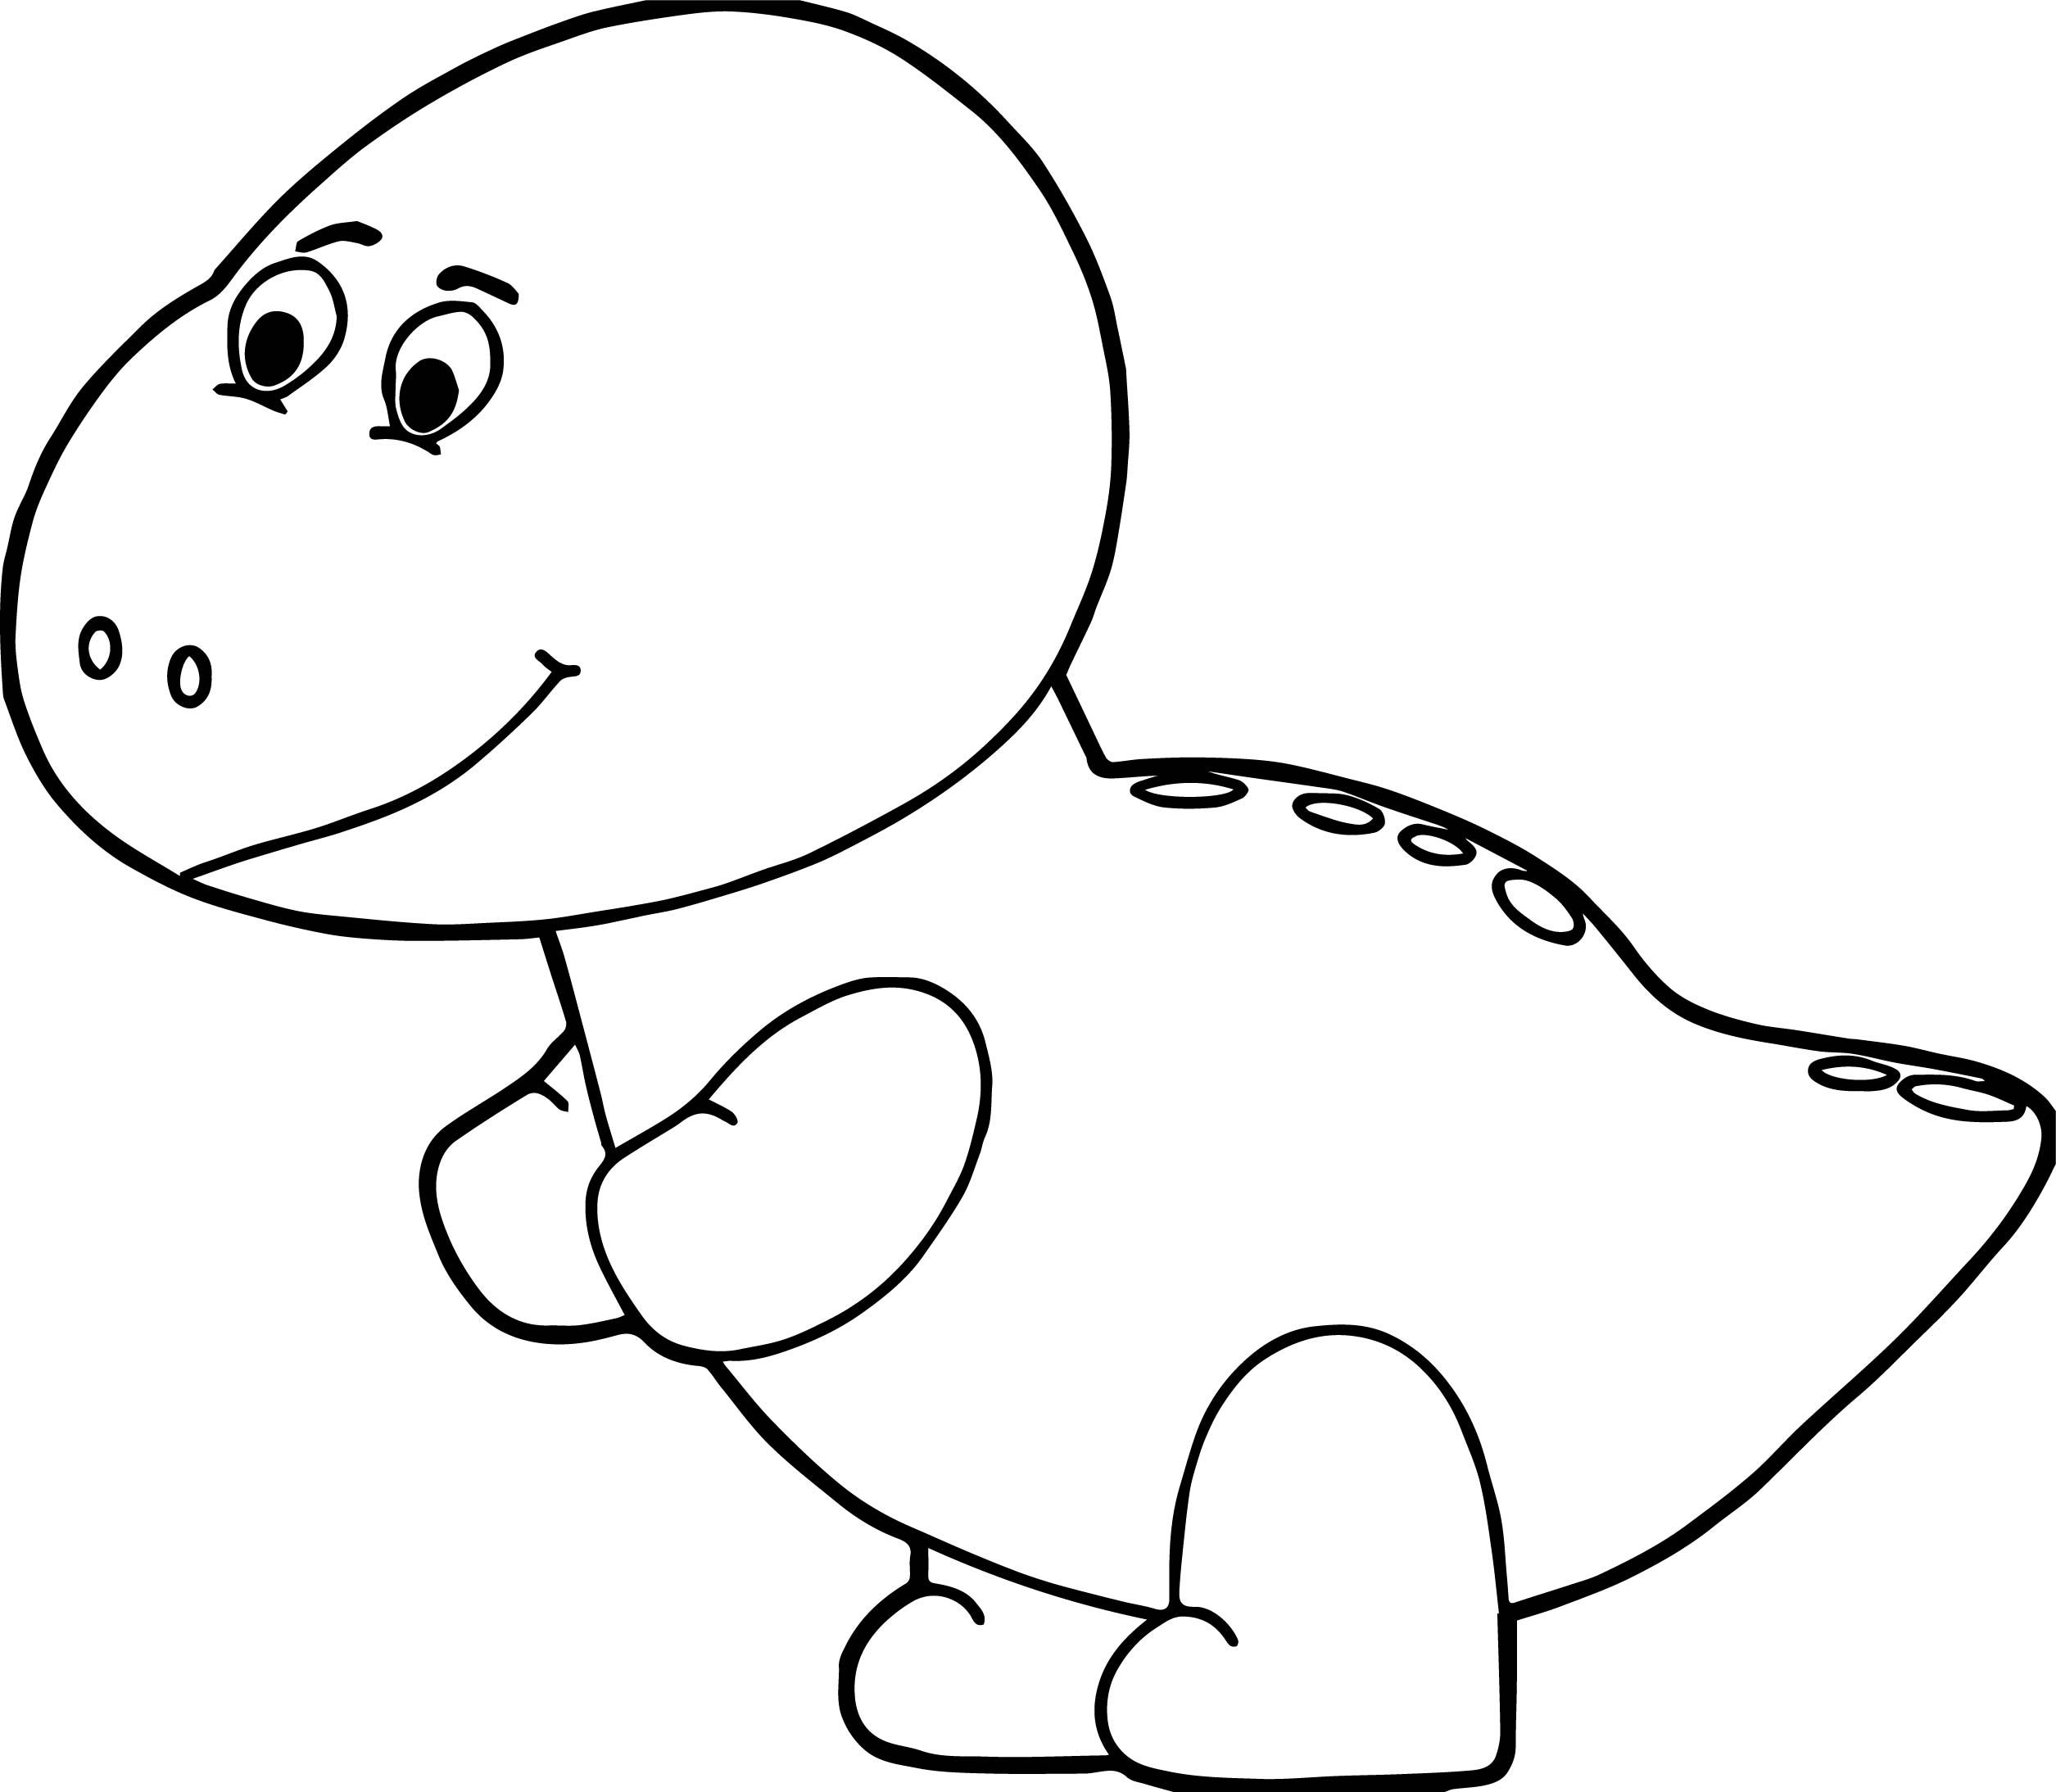 awesome Baby Dinosaur Egg Head Coloring Page | wecoloringpage ...